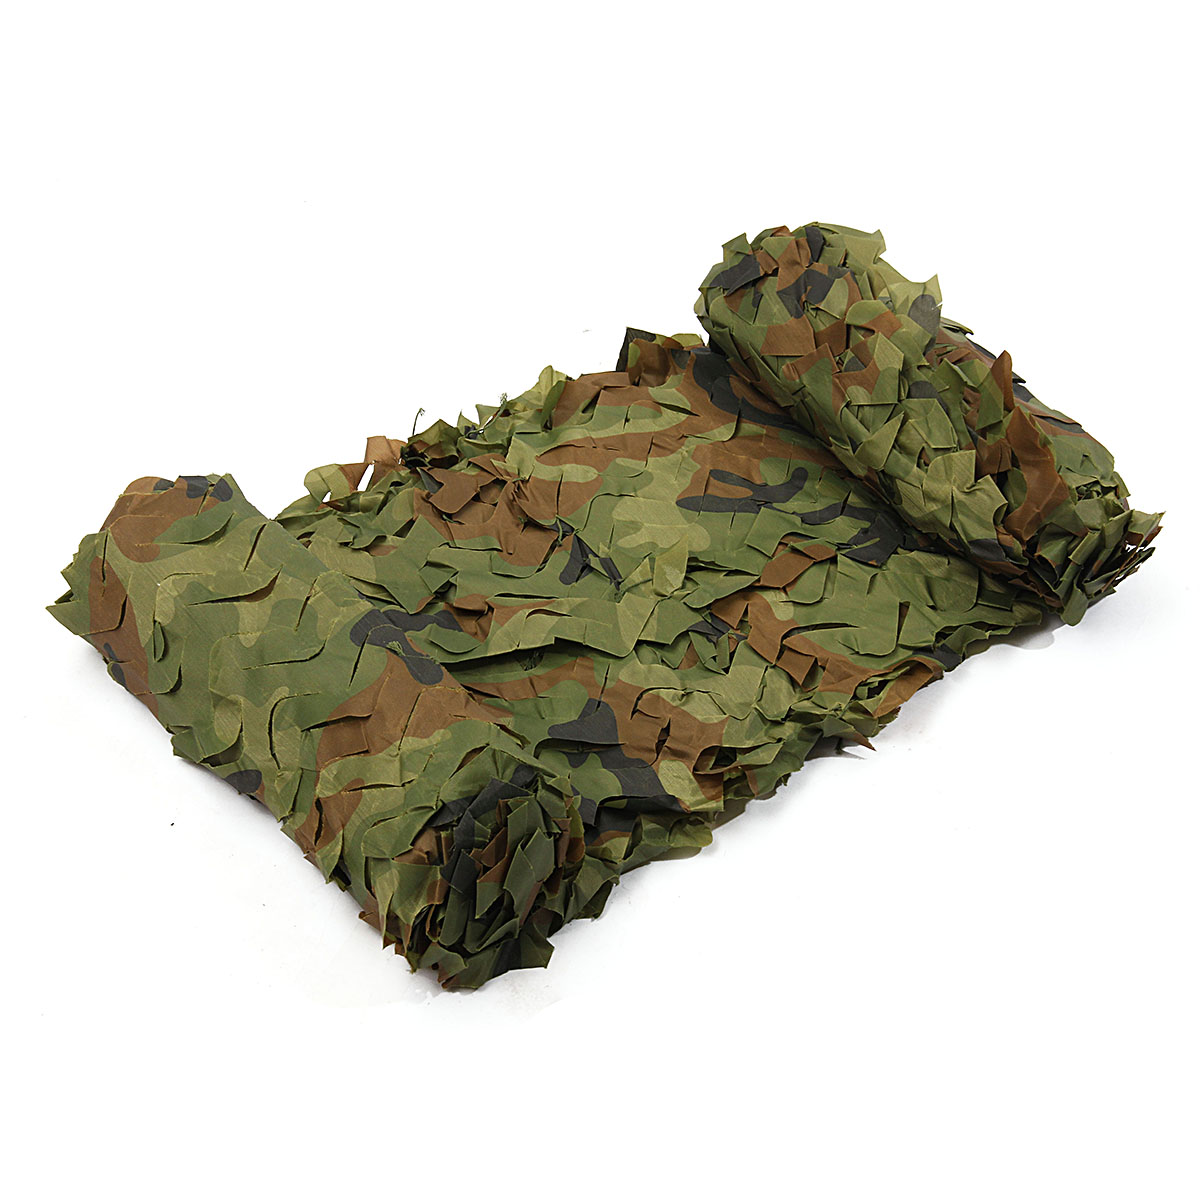 5mx2.5m Camo Netting Camouflage Net for Car Cover Camping Woodland Military Hunting Shooting